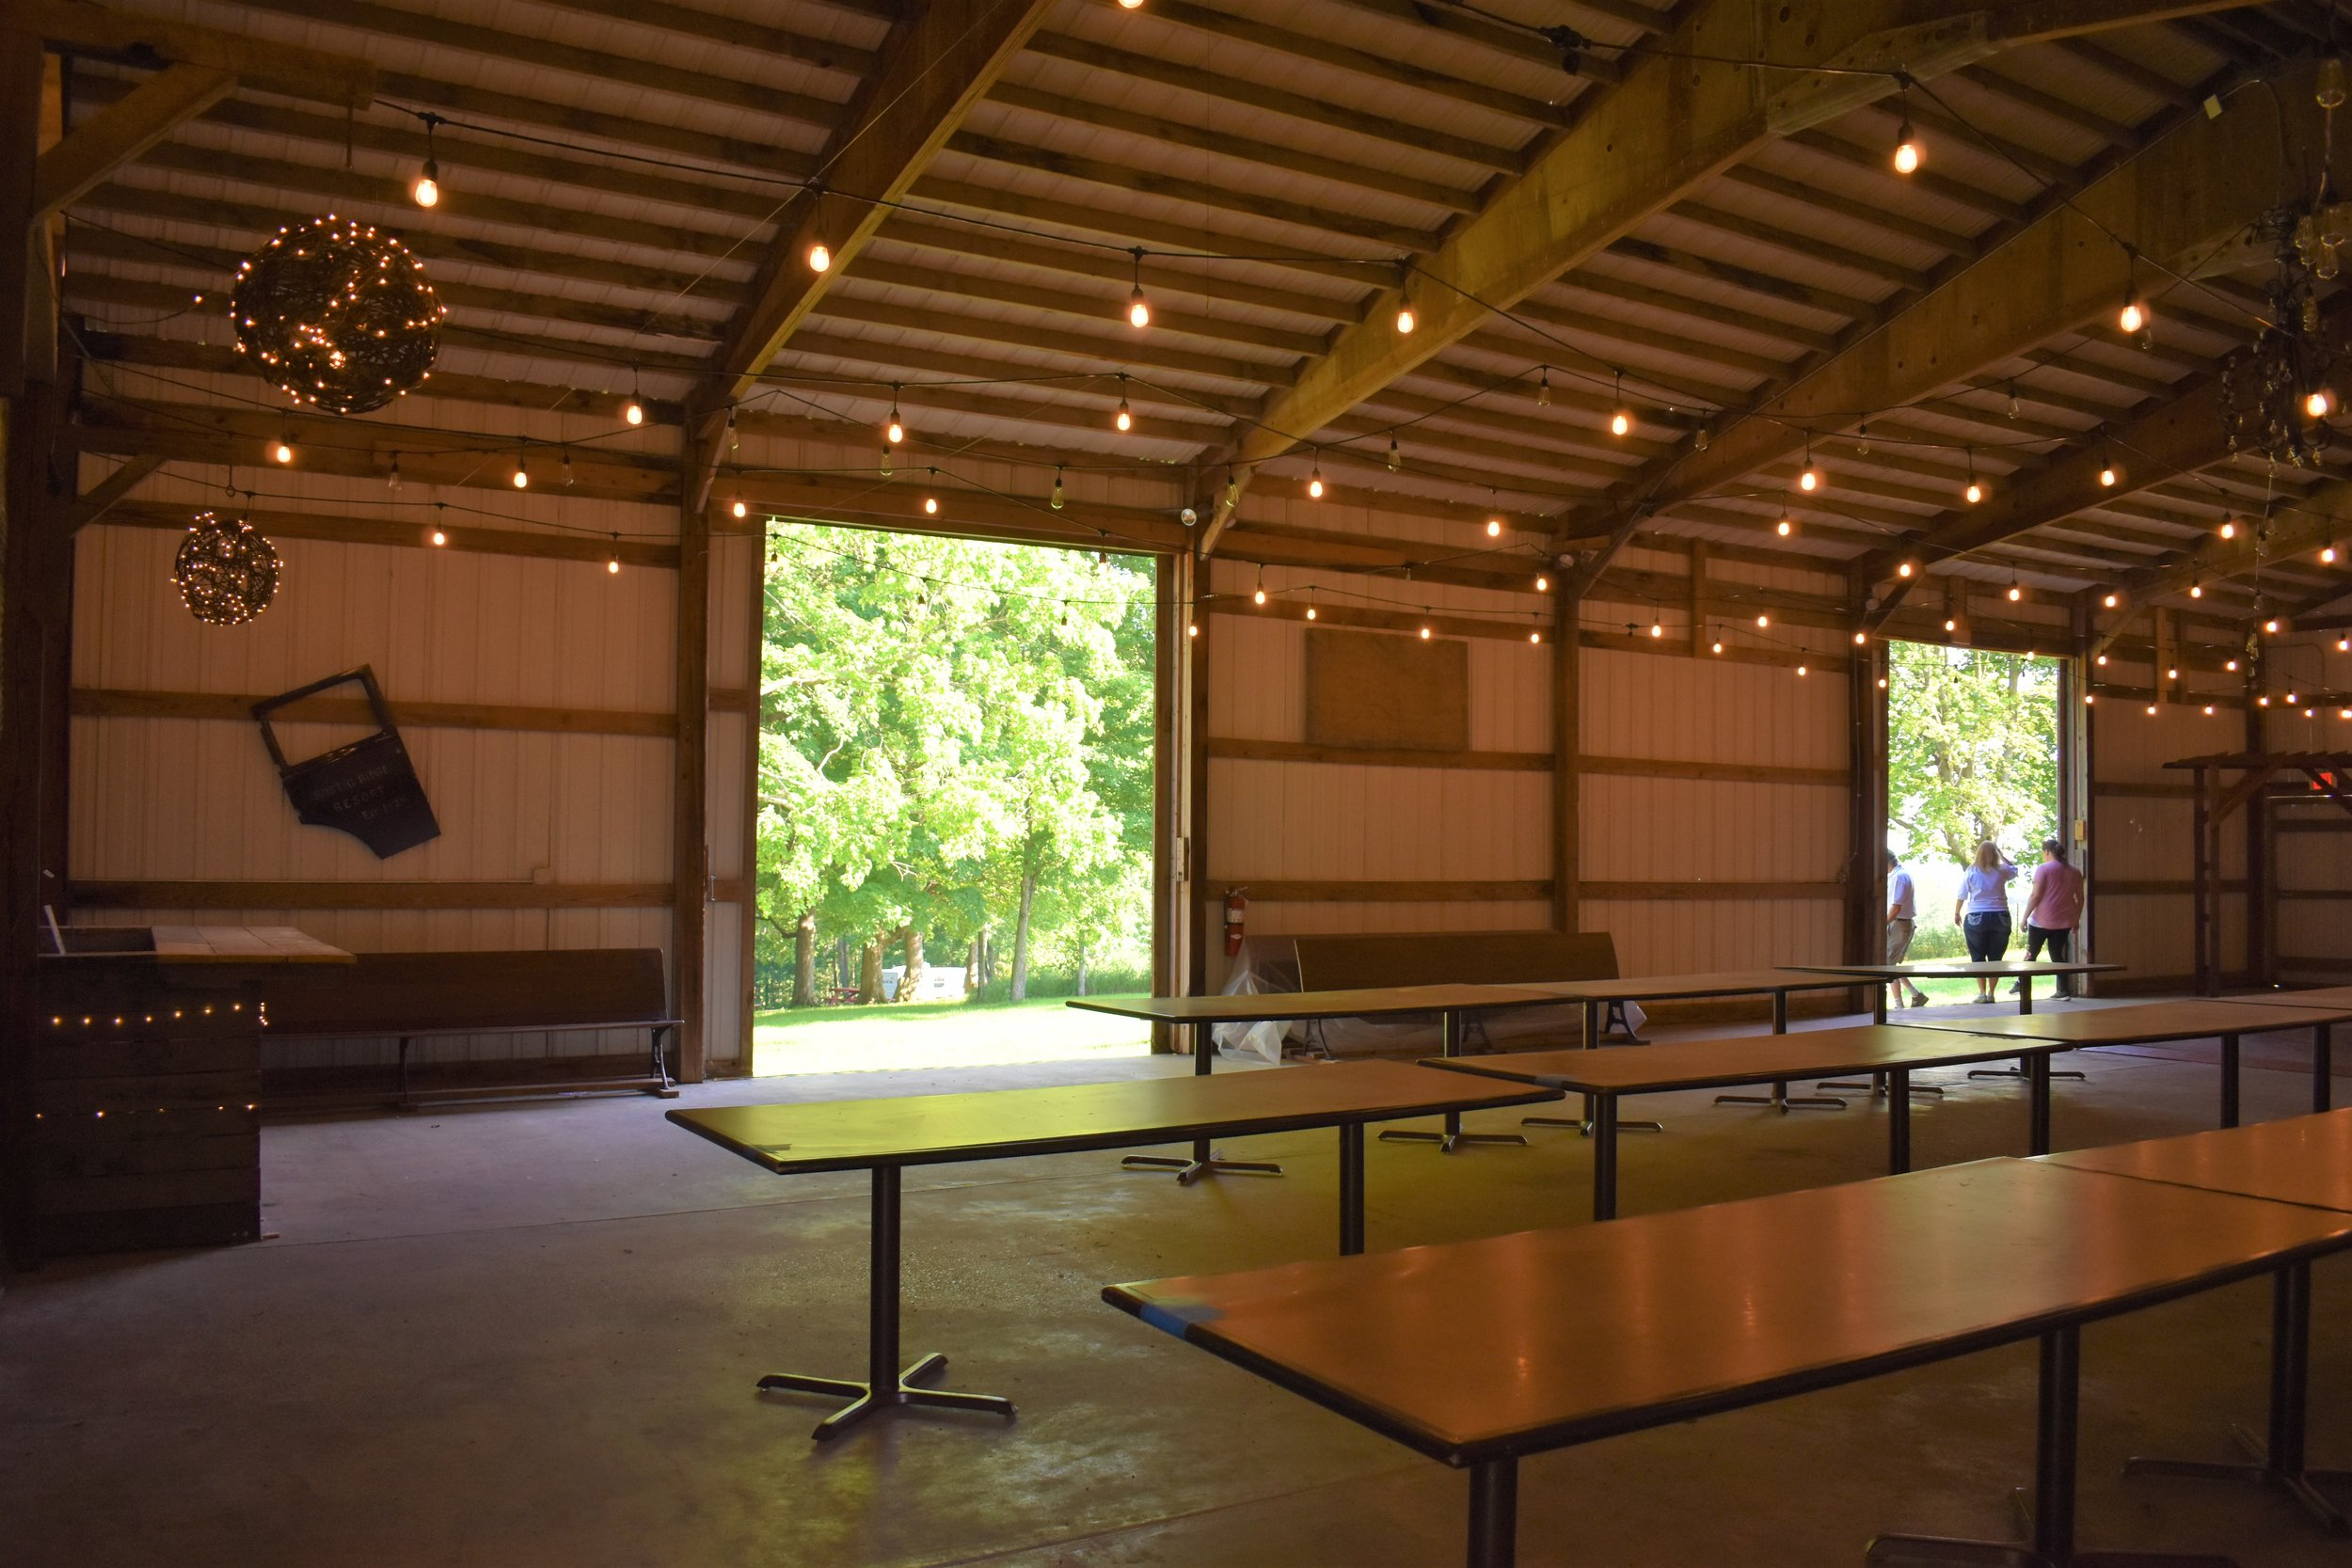 The converted basketball court shed that serves as an event venue perfect for weddings